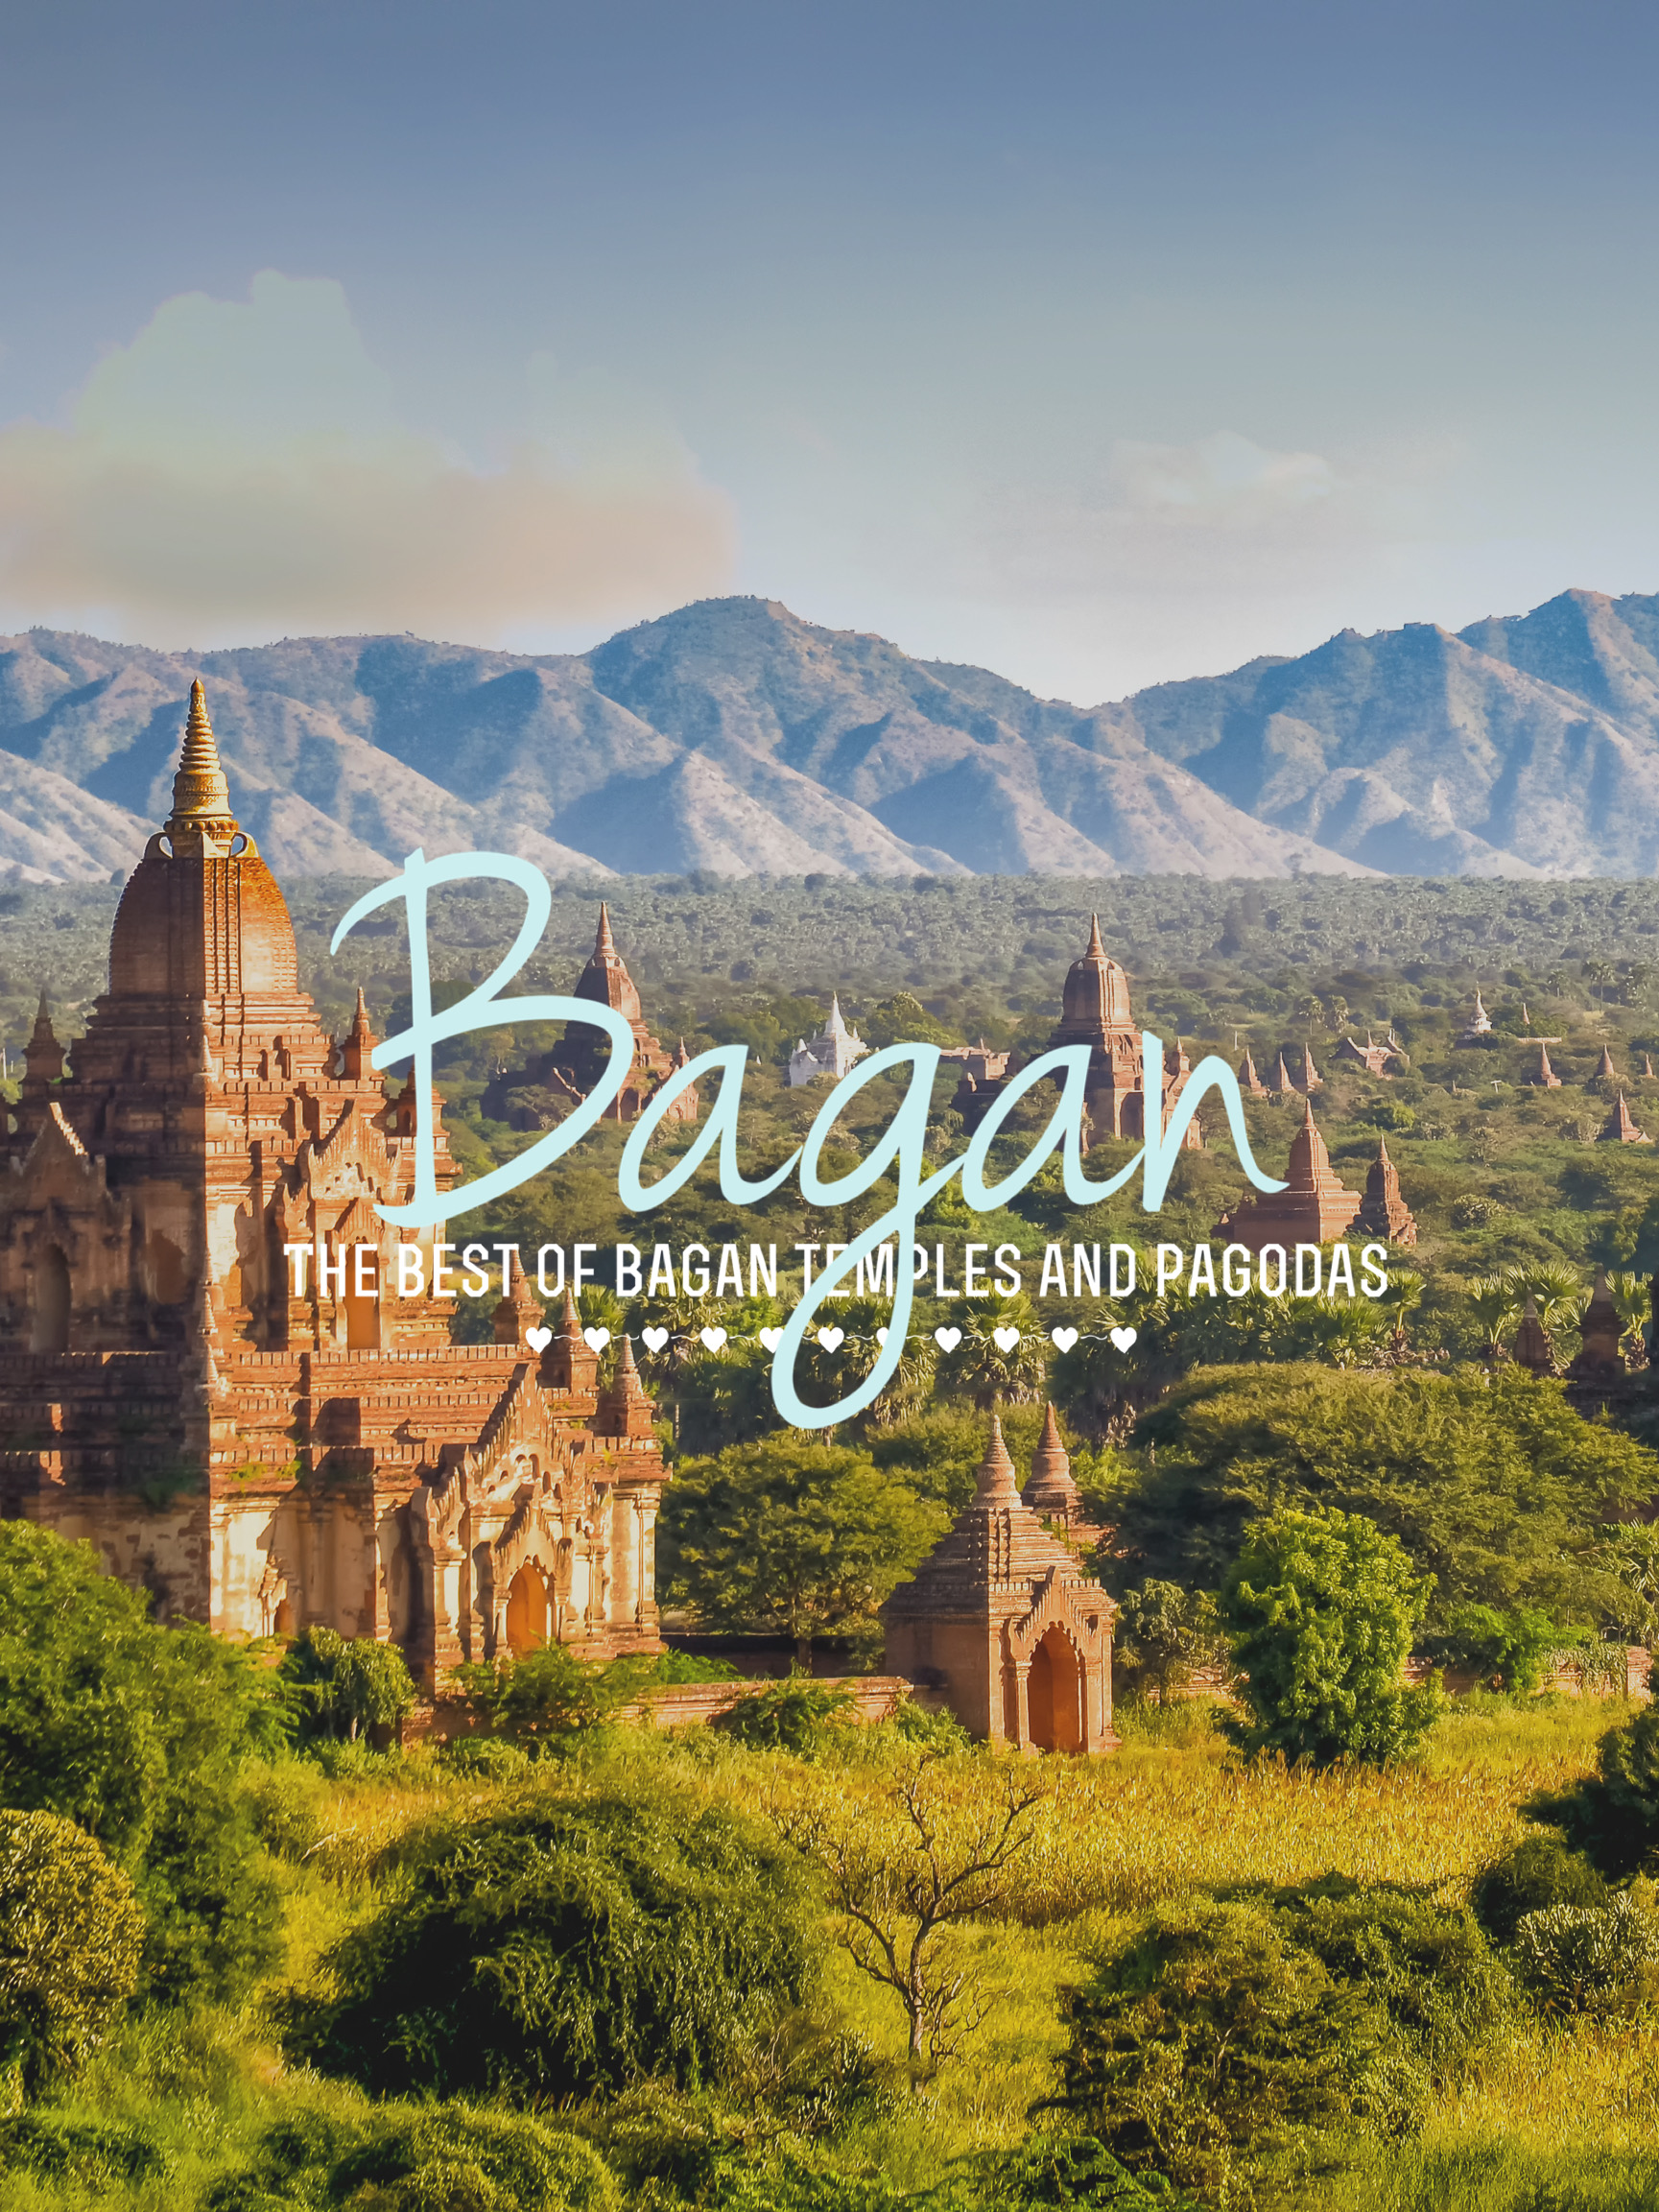 The Best of Bagan Pagodas